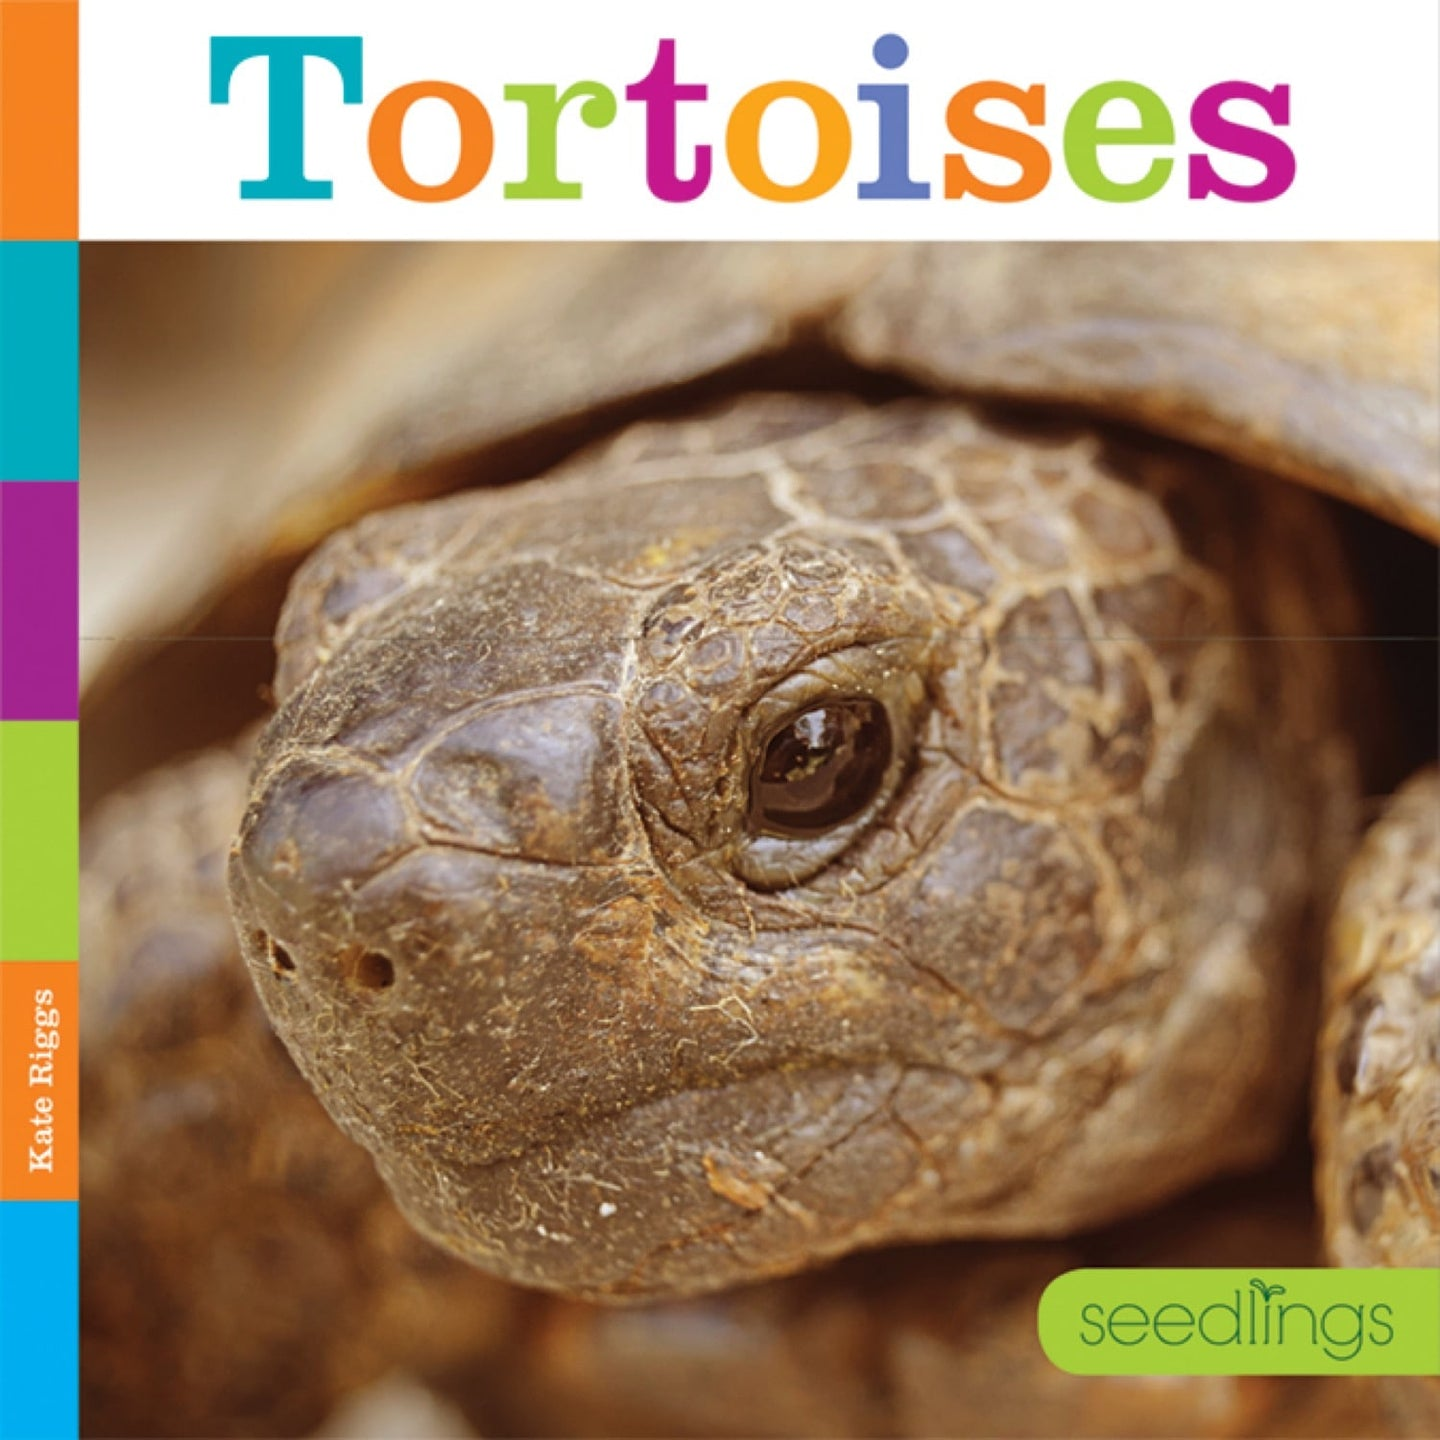 Seedlings: Tortoises